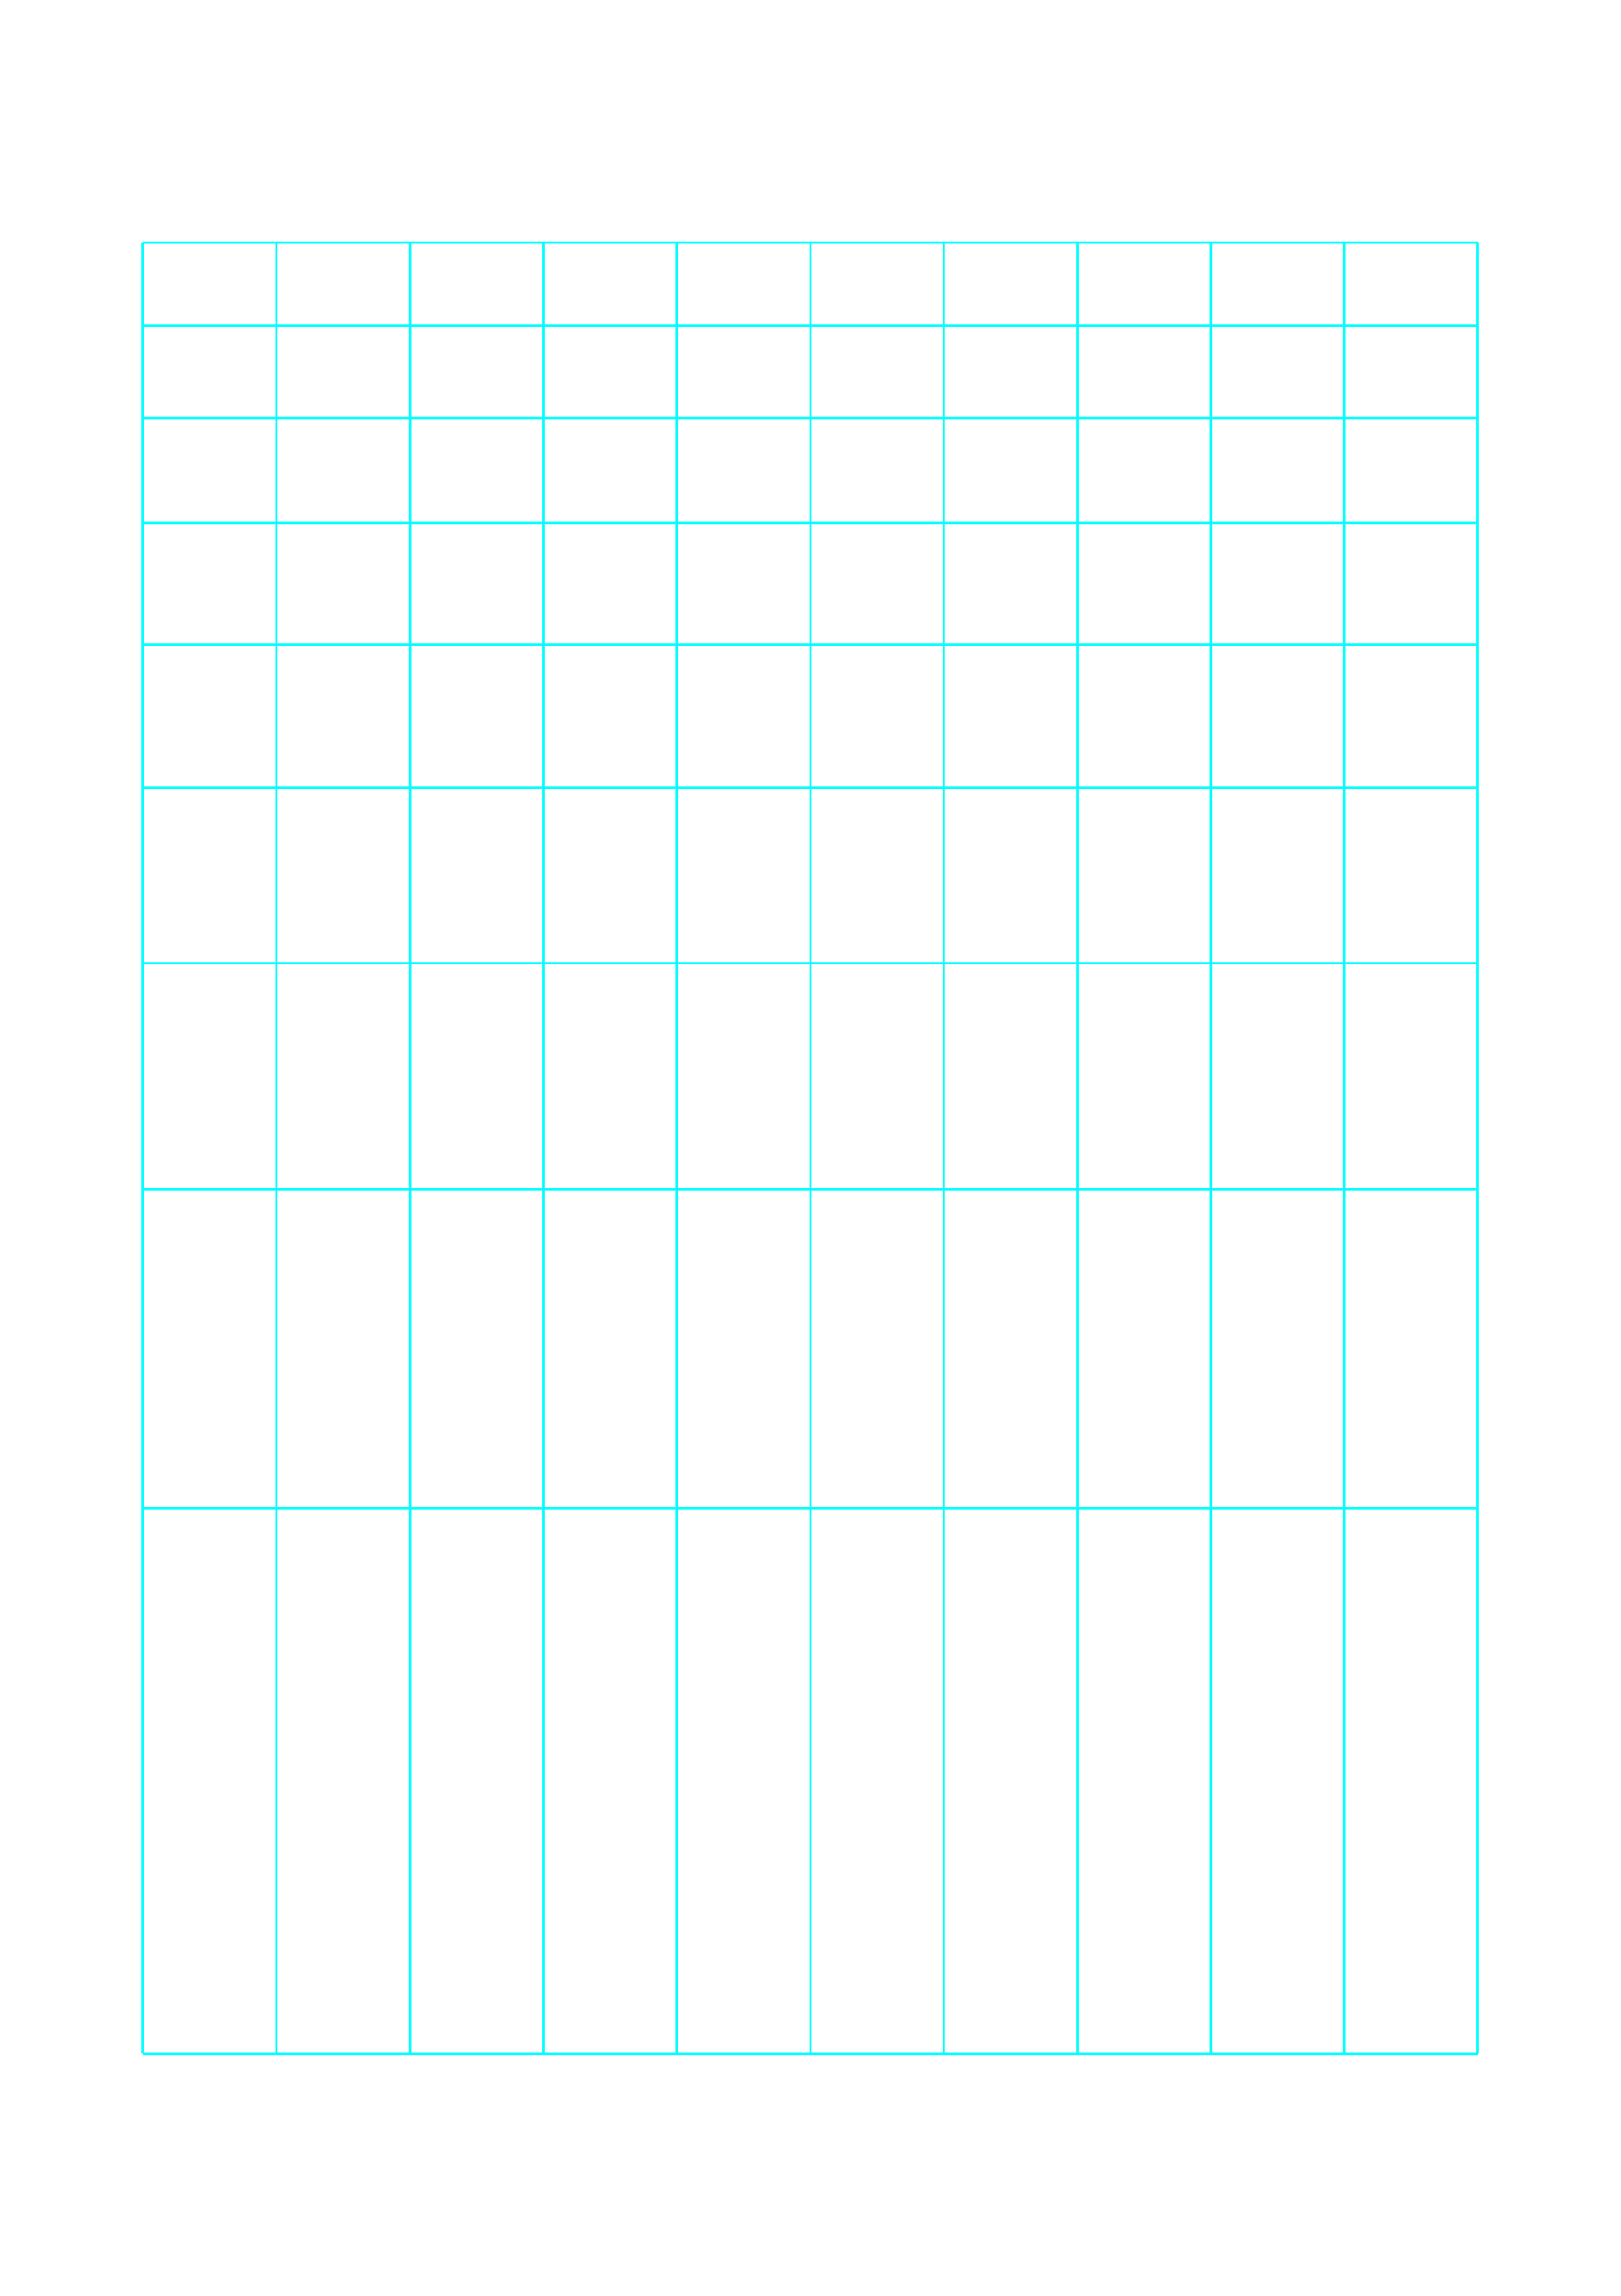 bg1 Free Printable Request Letter Template on free printable job letters, free printable letters of intent, free printable block letters outline, free printable alphabet letters c, free printable business organizers, free printable recommendation letters, free printable expense logs, free printable alphabet cut outs, free printable scissors, free printable bulletin inserts, free blank letter templates, free alphabet letter print out, letter g printable templates, free printable banners, free printable abc letters, free printable letters size alphabet, alphabet templates, free printable alphabet stencils, free printable bubble letters, free disney letter templates,